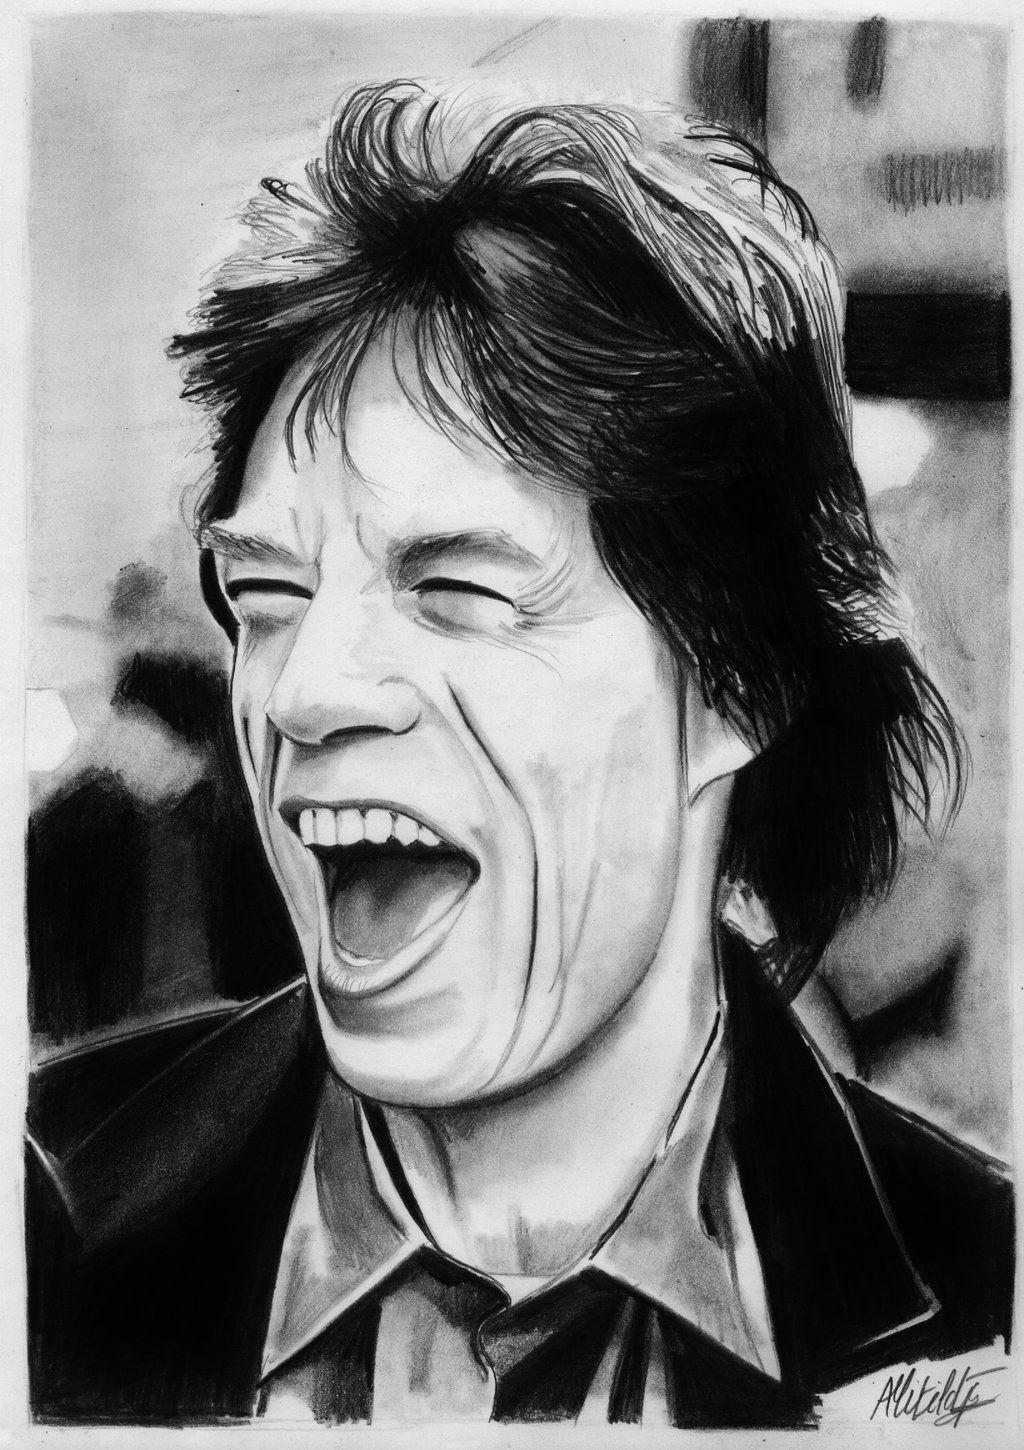 Mick Jagger drawing by alainmi on DeviantArt